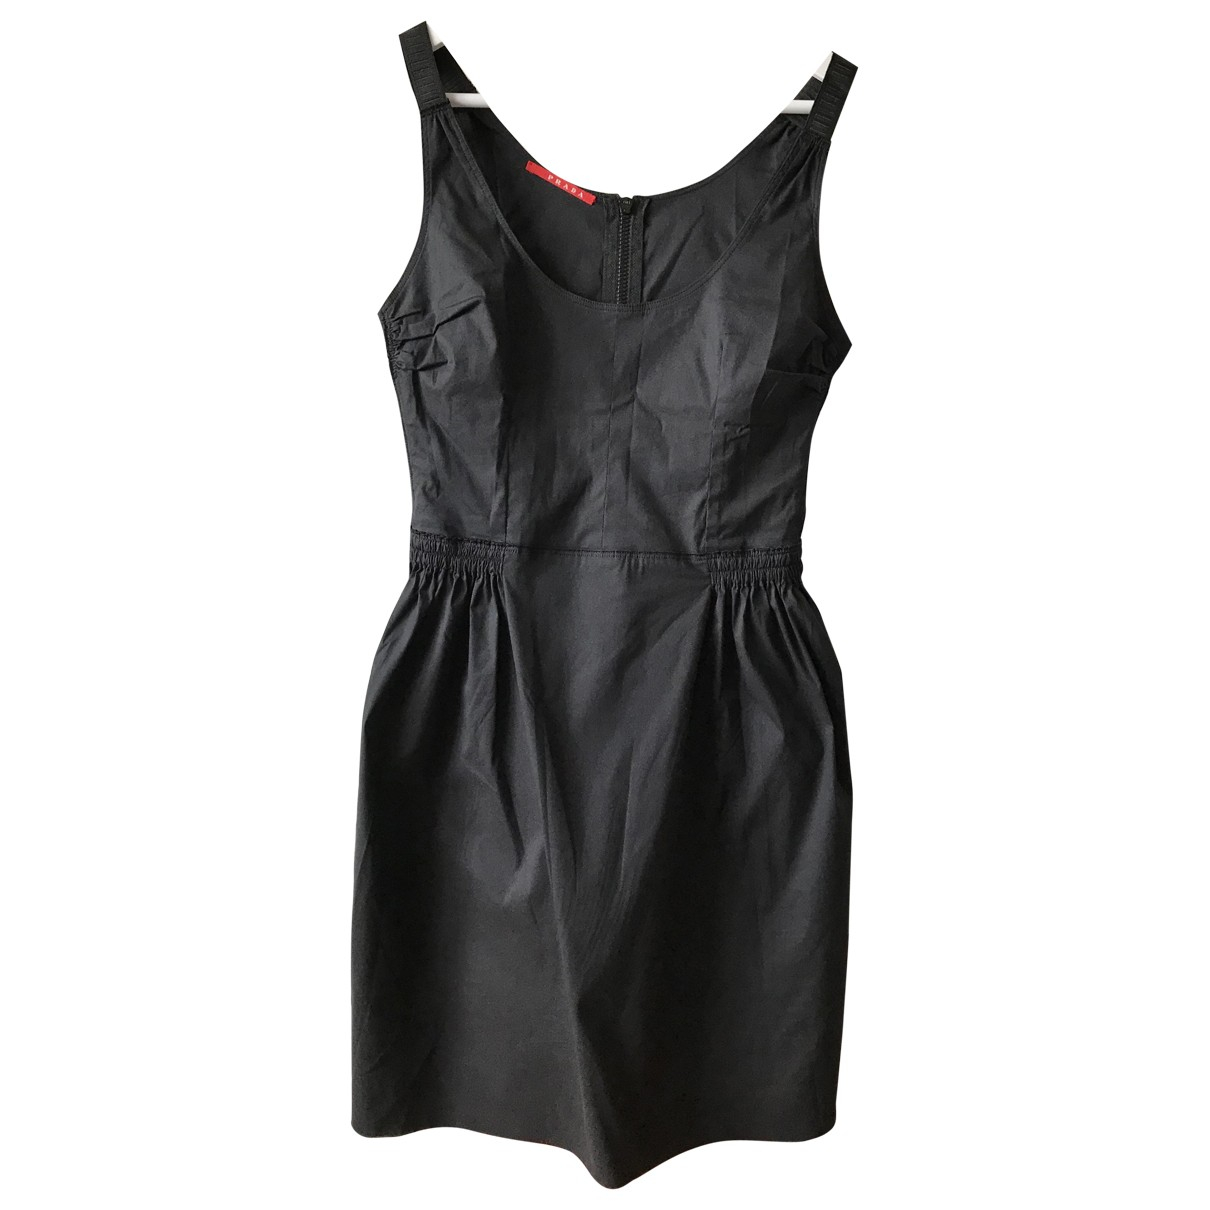 Prada \N Black Cotton dress for Women 32 FR